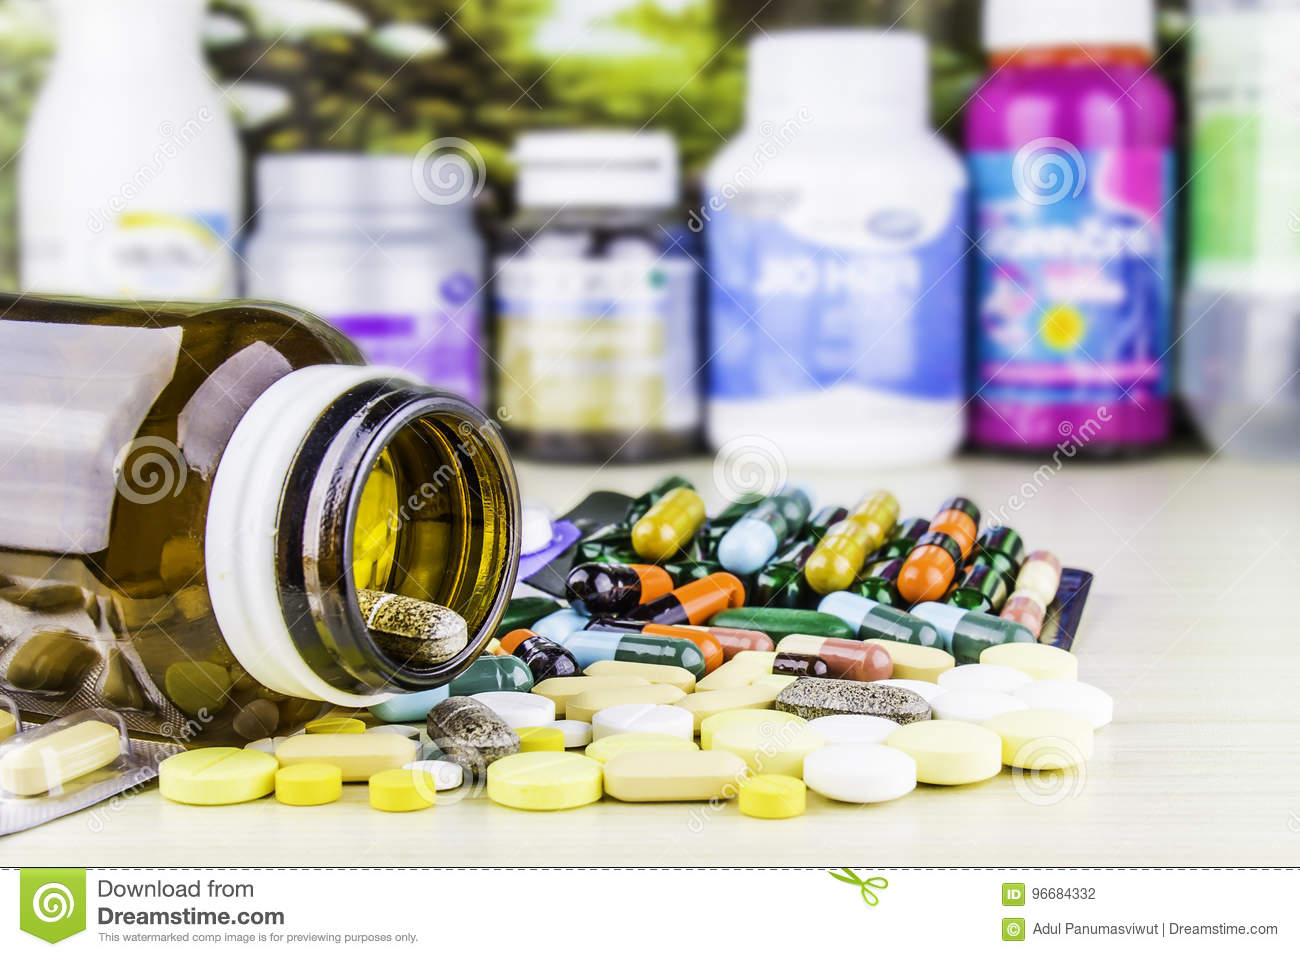 Medicine or capsules. Drug prescription for treatment medication. Pharmaceutical medicament, cure in container for health. Pharmac